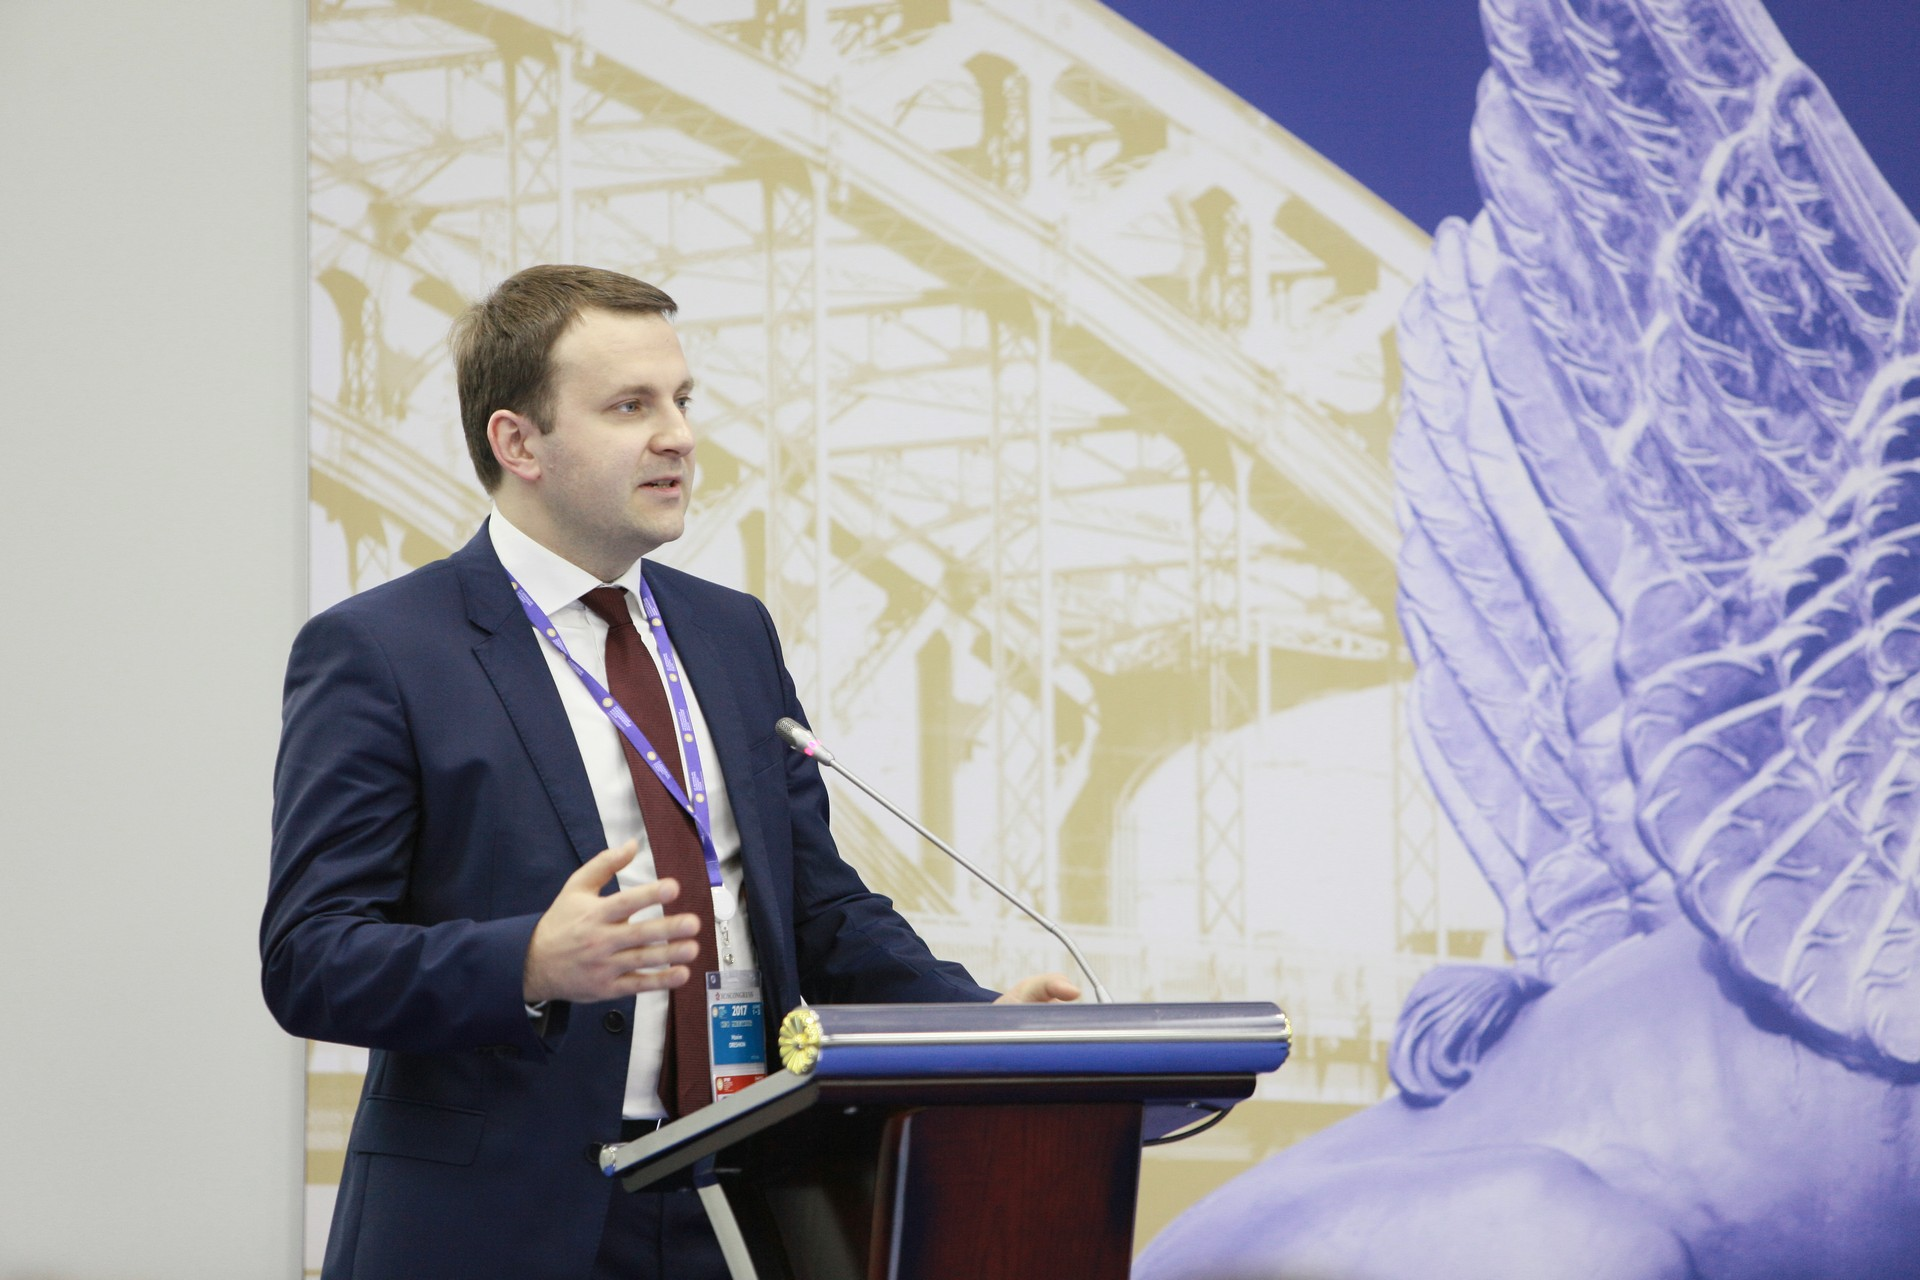 Minister for Economic Development of the Russian Federation Maxim Oreshkin to discuss investment opportunities in Russian production at Russia House in Davos